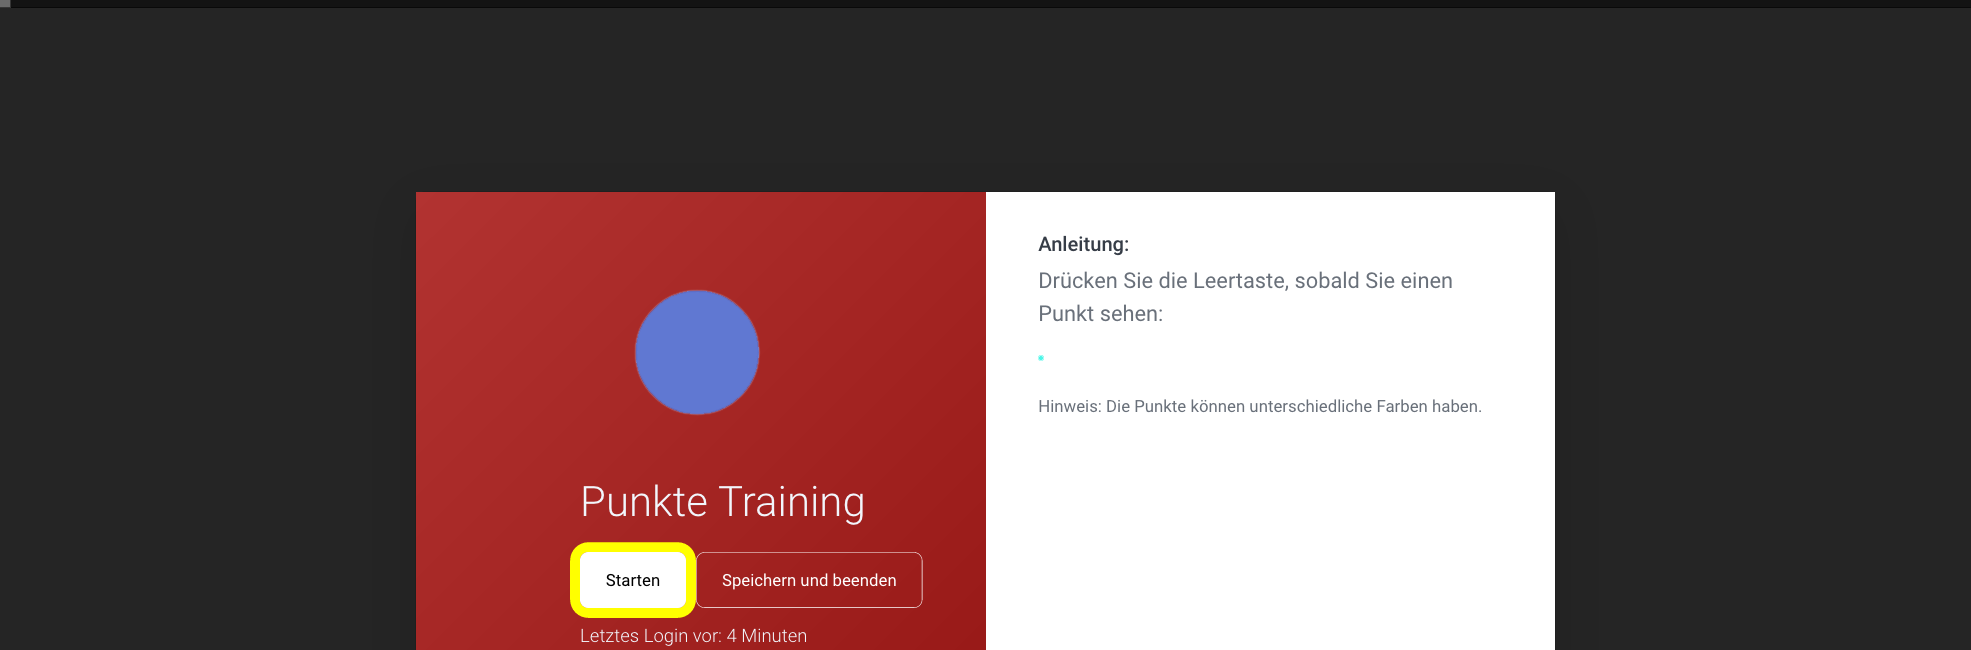 Punkte Training